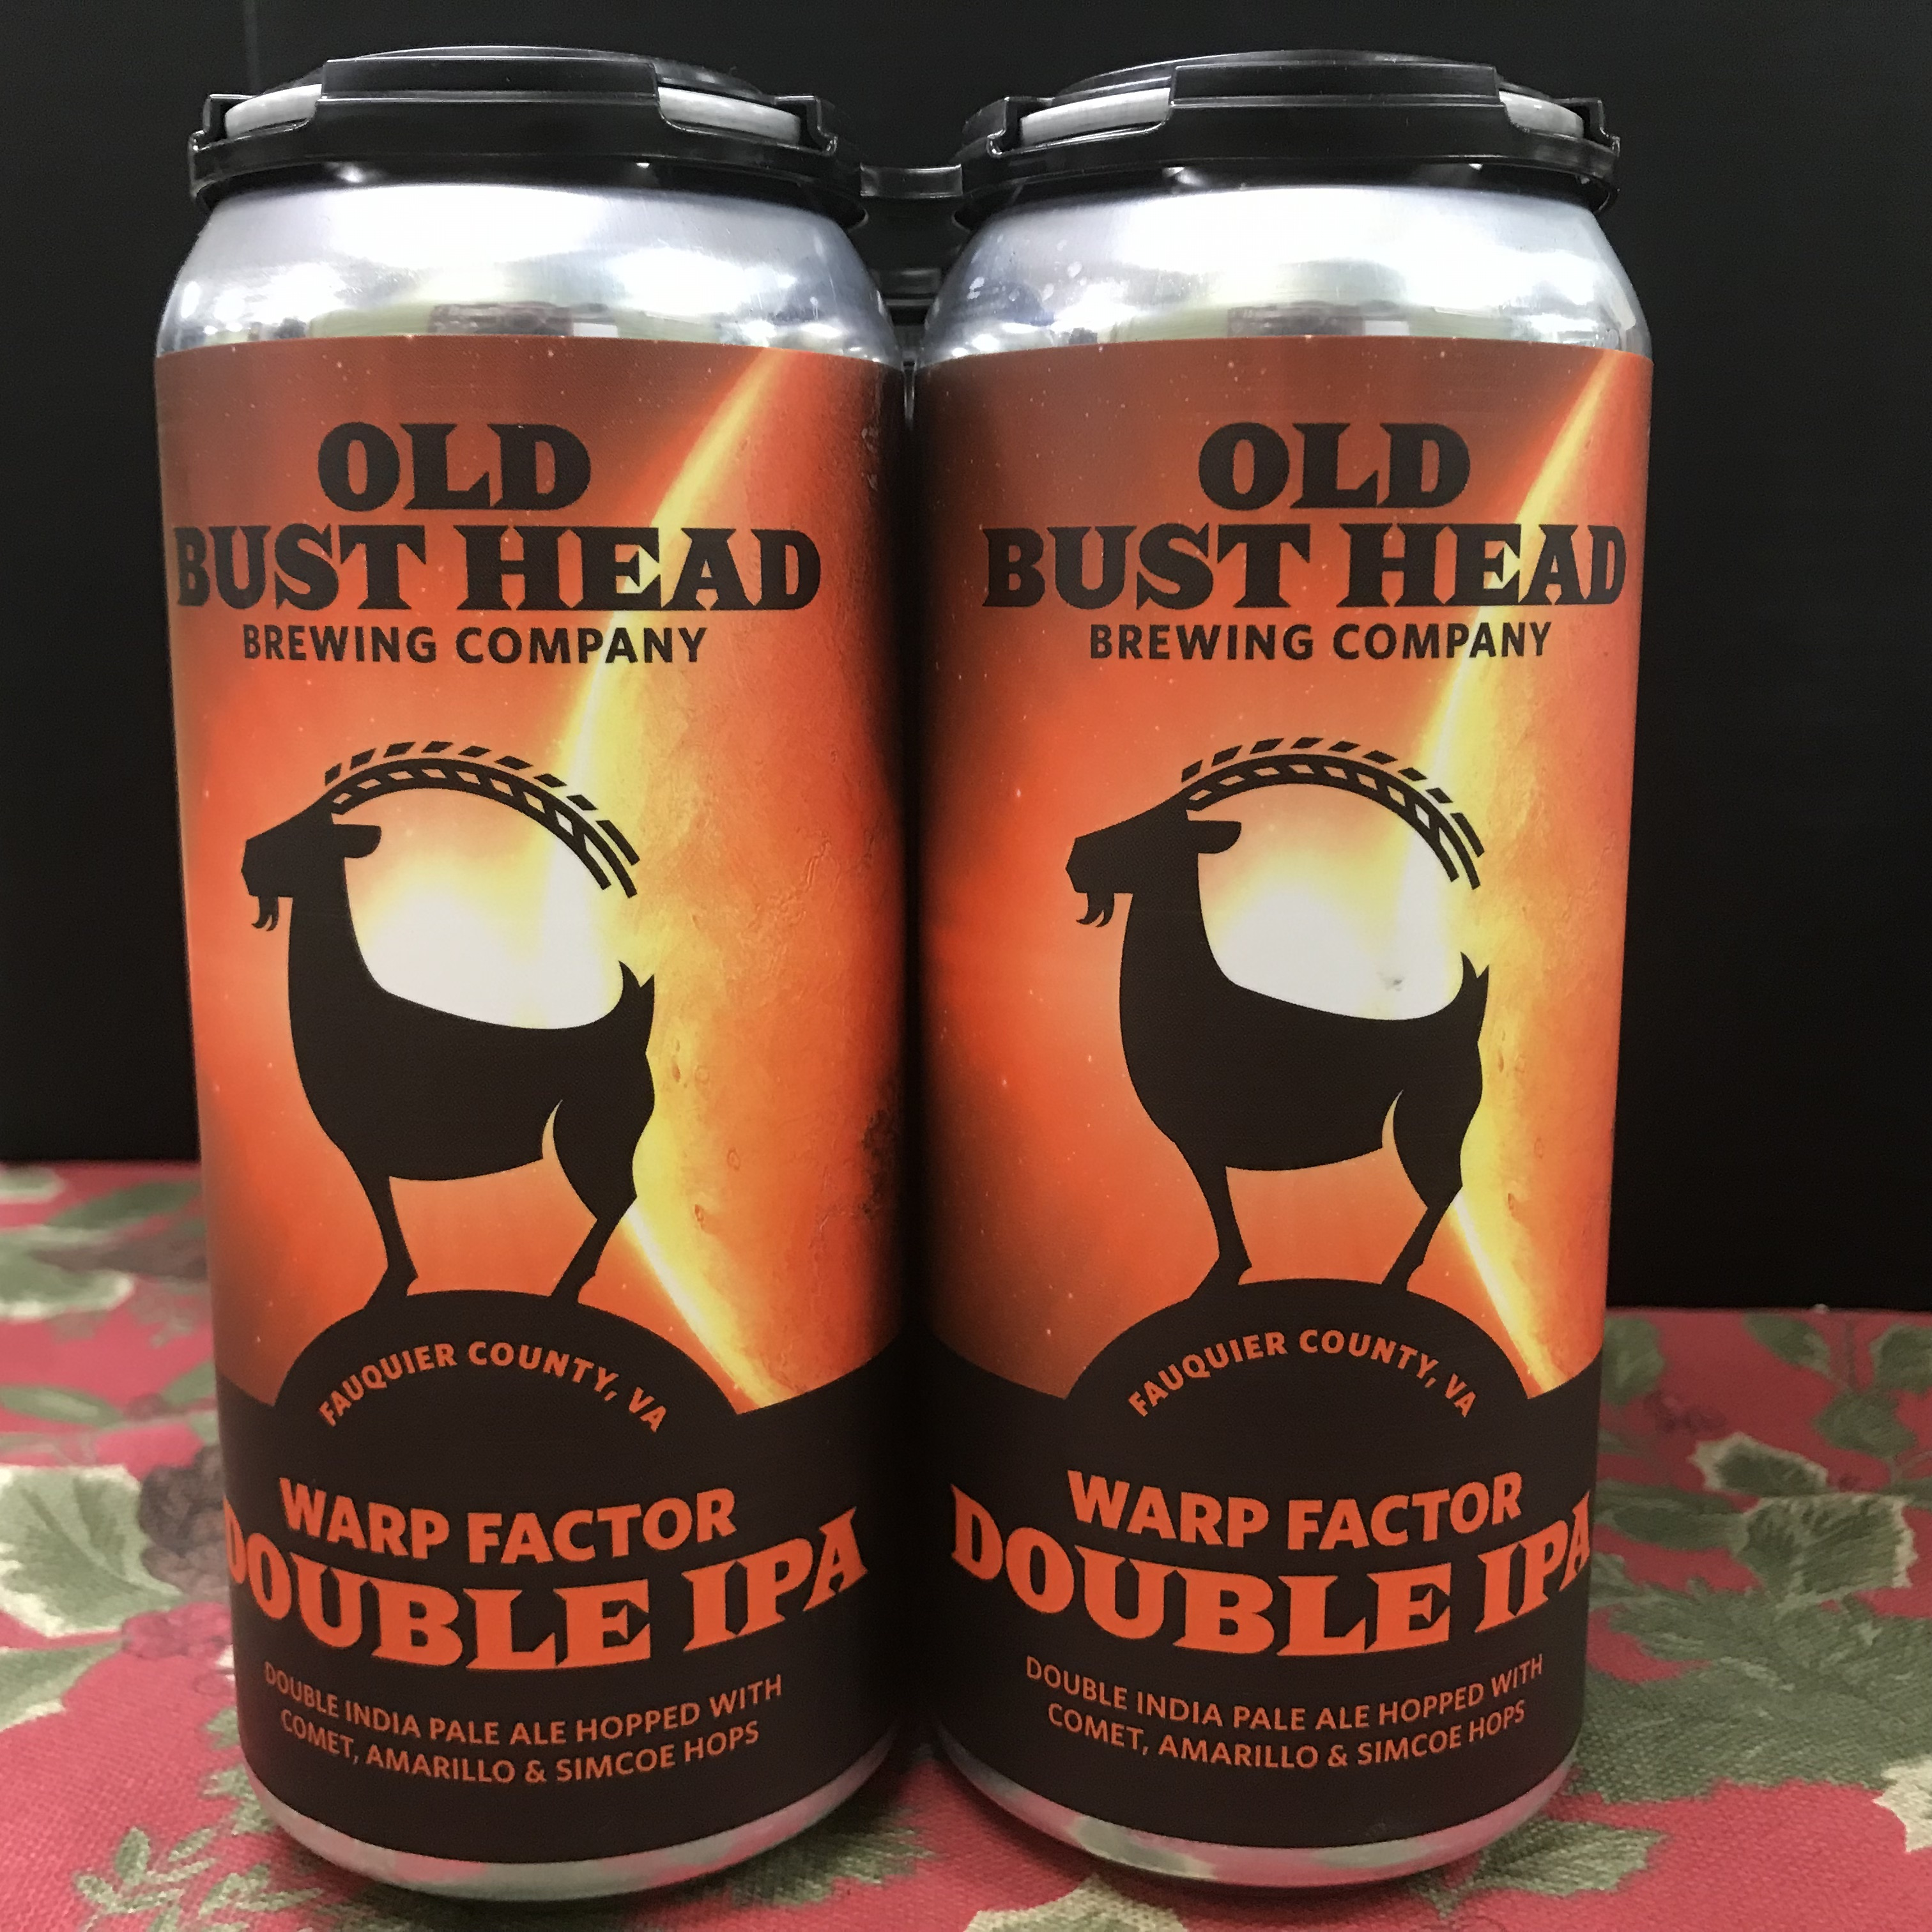 Old Bust Head Warp Factor Double IPA 4 x 1 pint cans